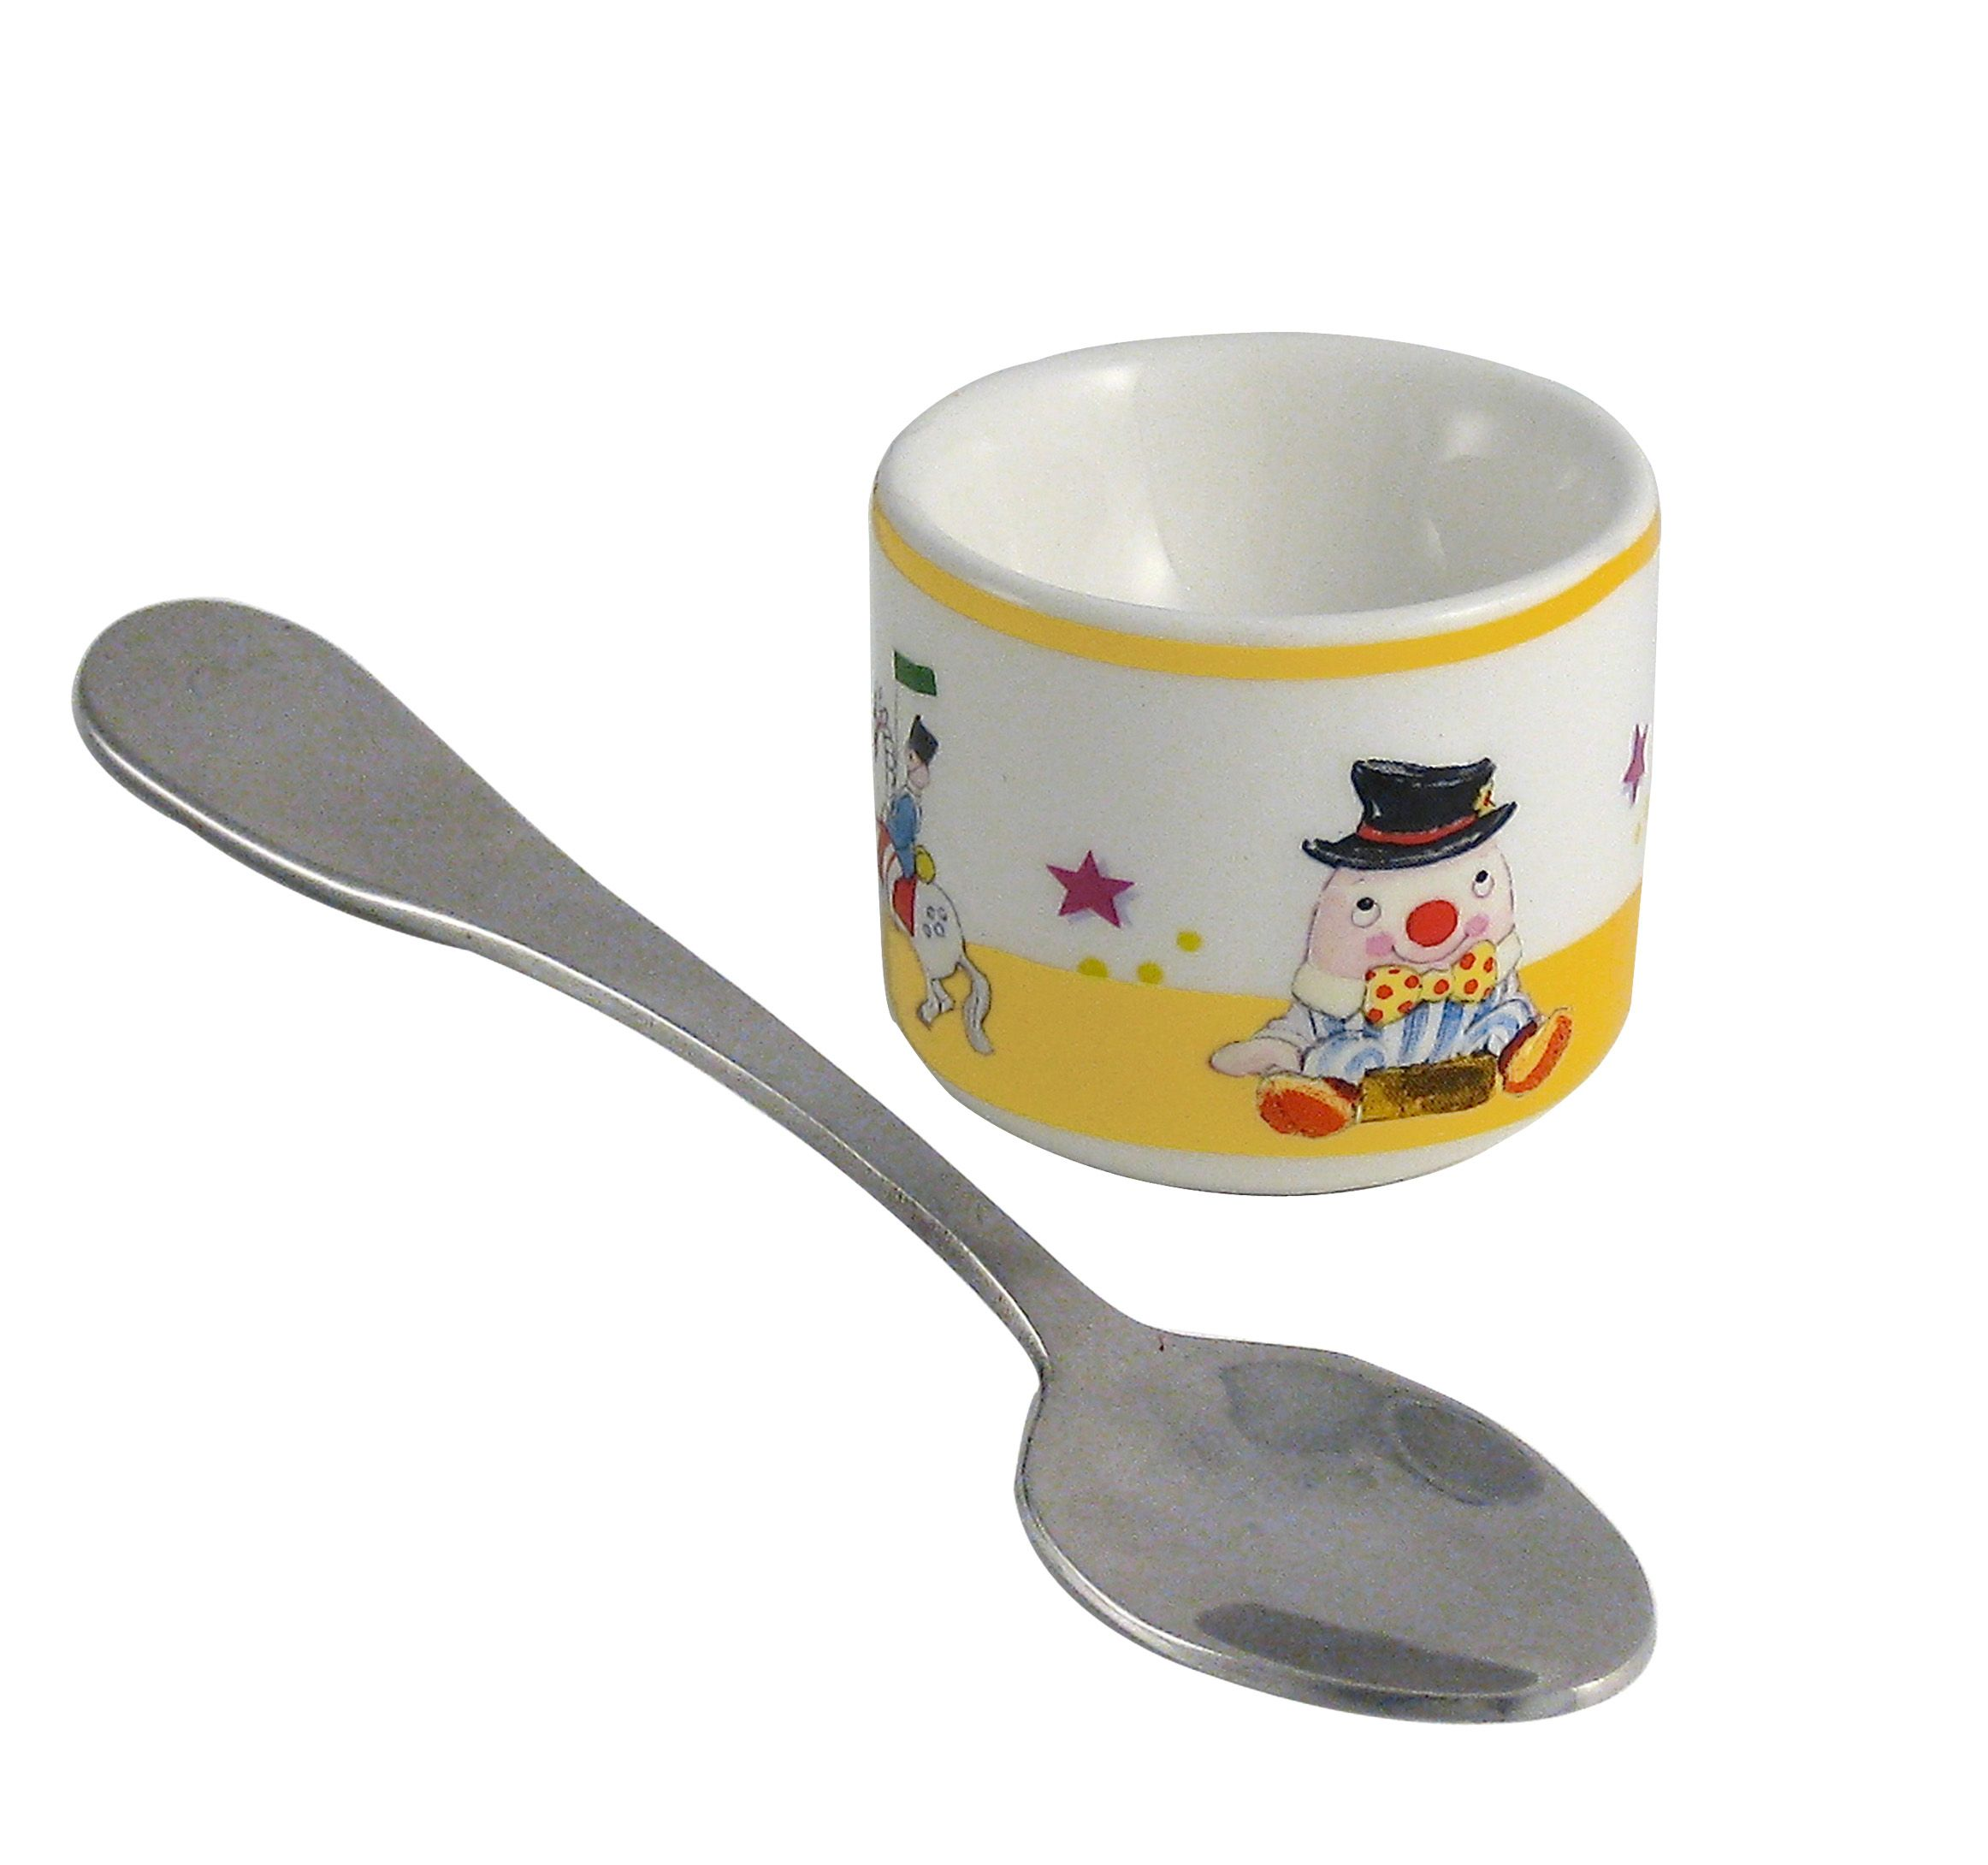 Aynsley Aynsley Humpty Dumpty eggcup and spoon